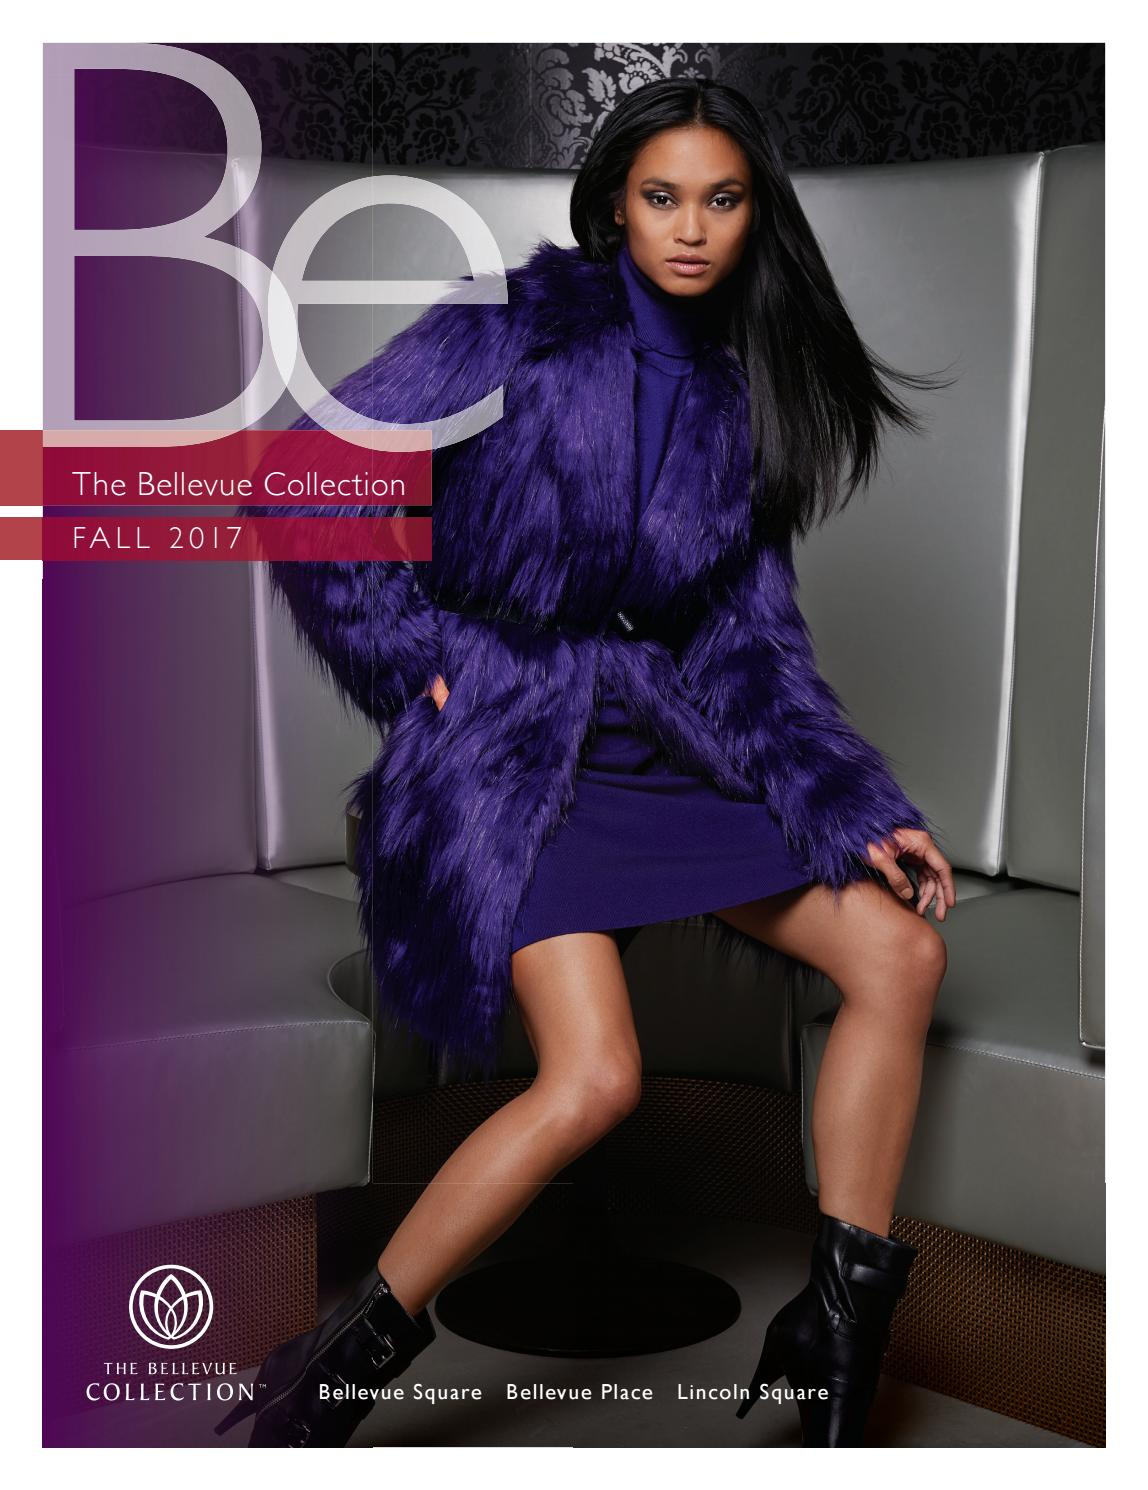 fall 2017 be magazine by the bellevue collection issuu issuu